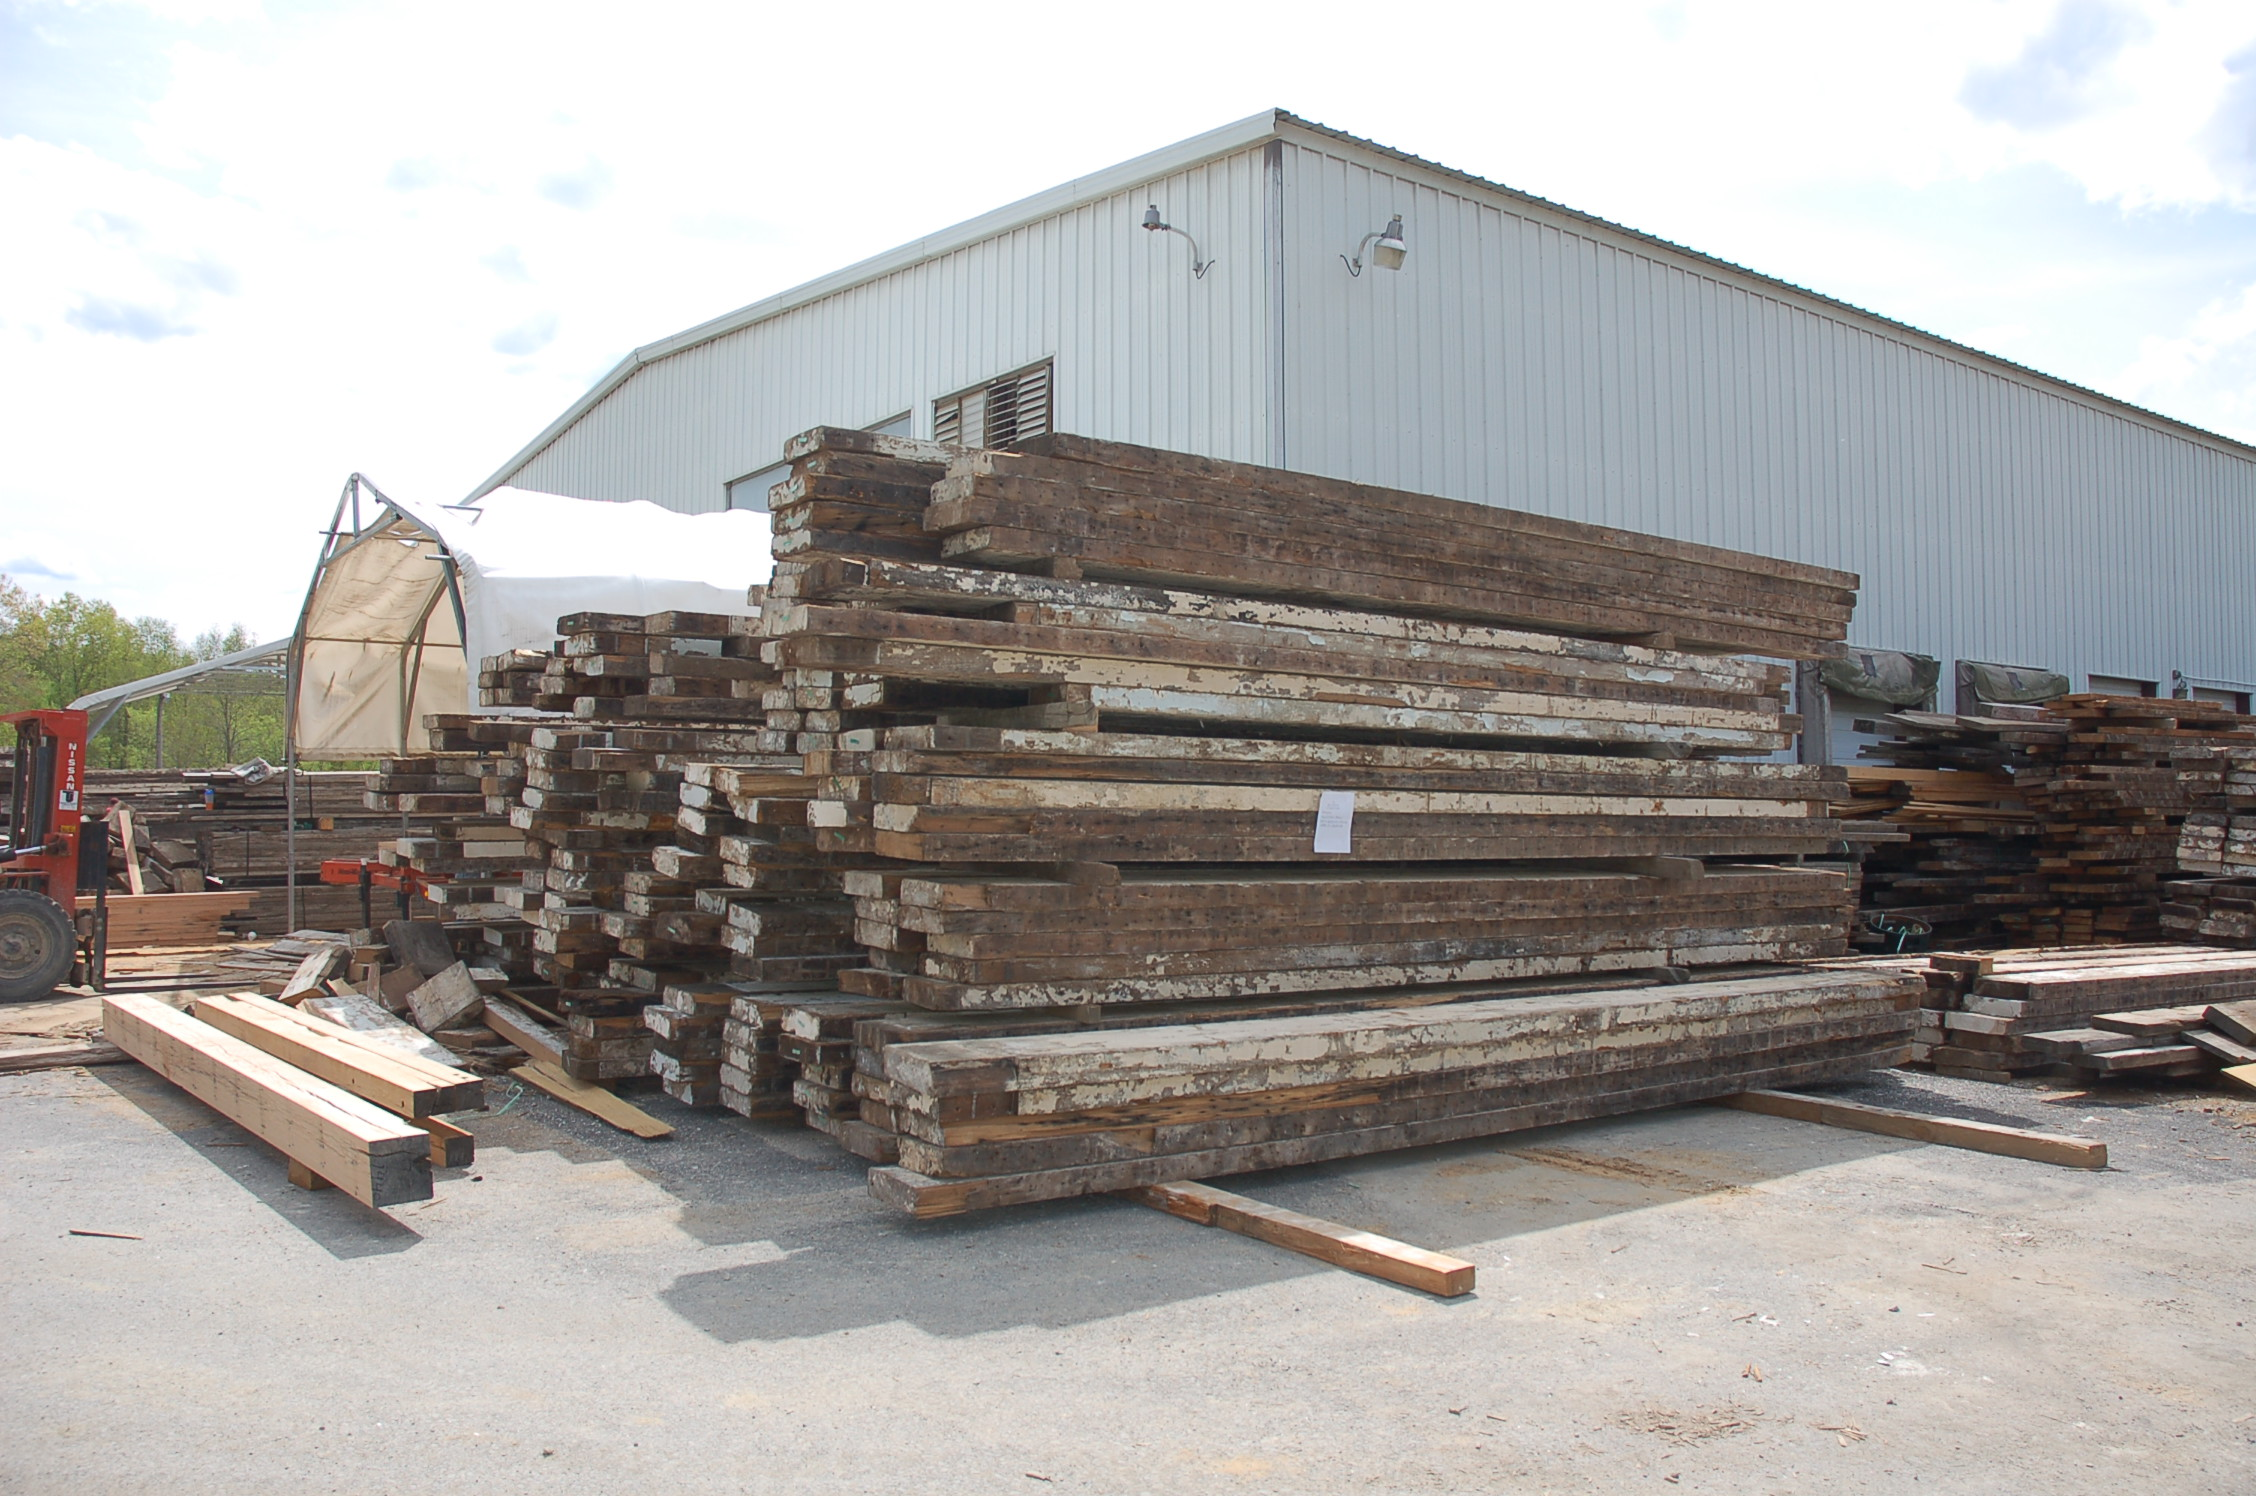 De-nailed raw material, ready for milling at The Hudson Company Mill, Pine Plains, NY.